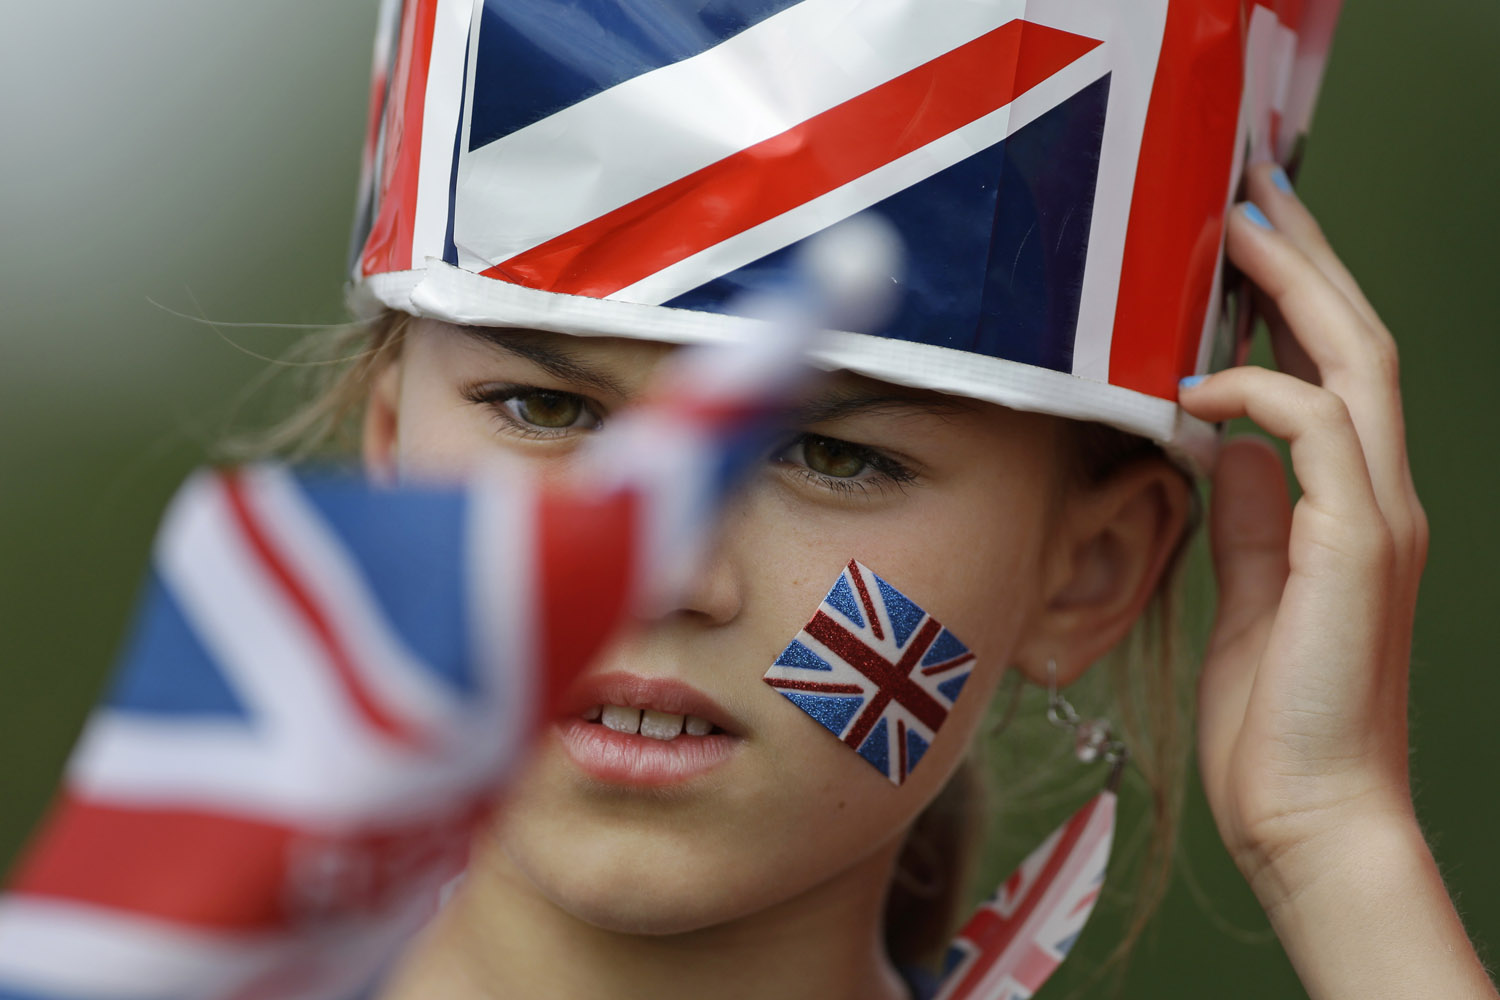 Aug. 12, 2012. A fan of Great Britain watches the Mountain Biking men's race at the 2012 Summer Olympics.